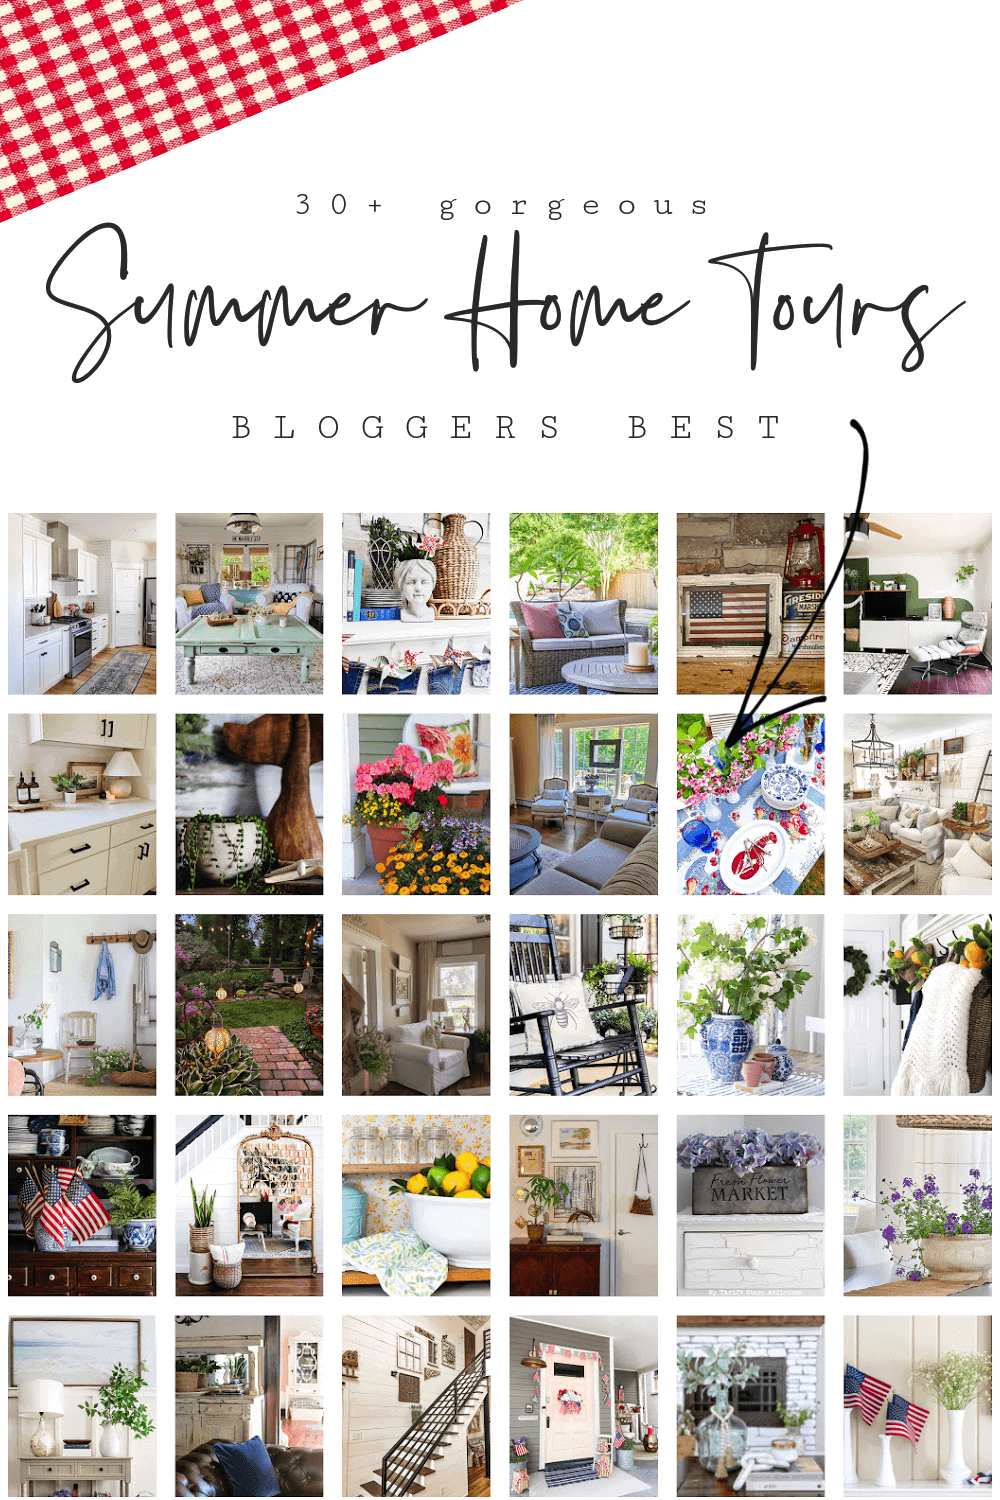 """Collage with images of home decor for summer season with text overlay reading """"Summer Home Tours"""""""